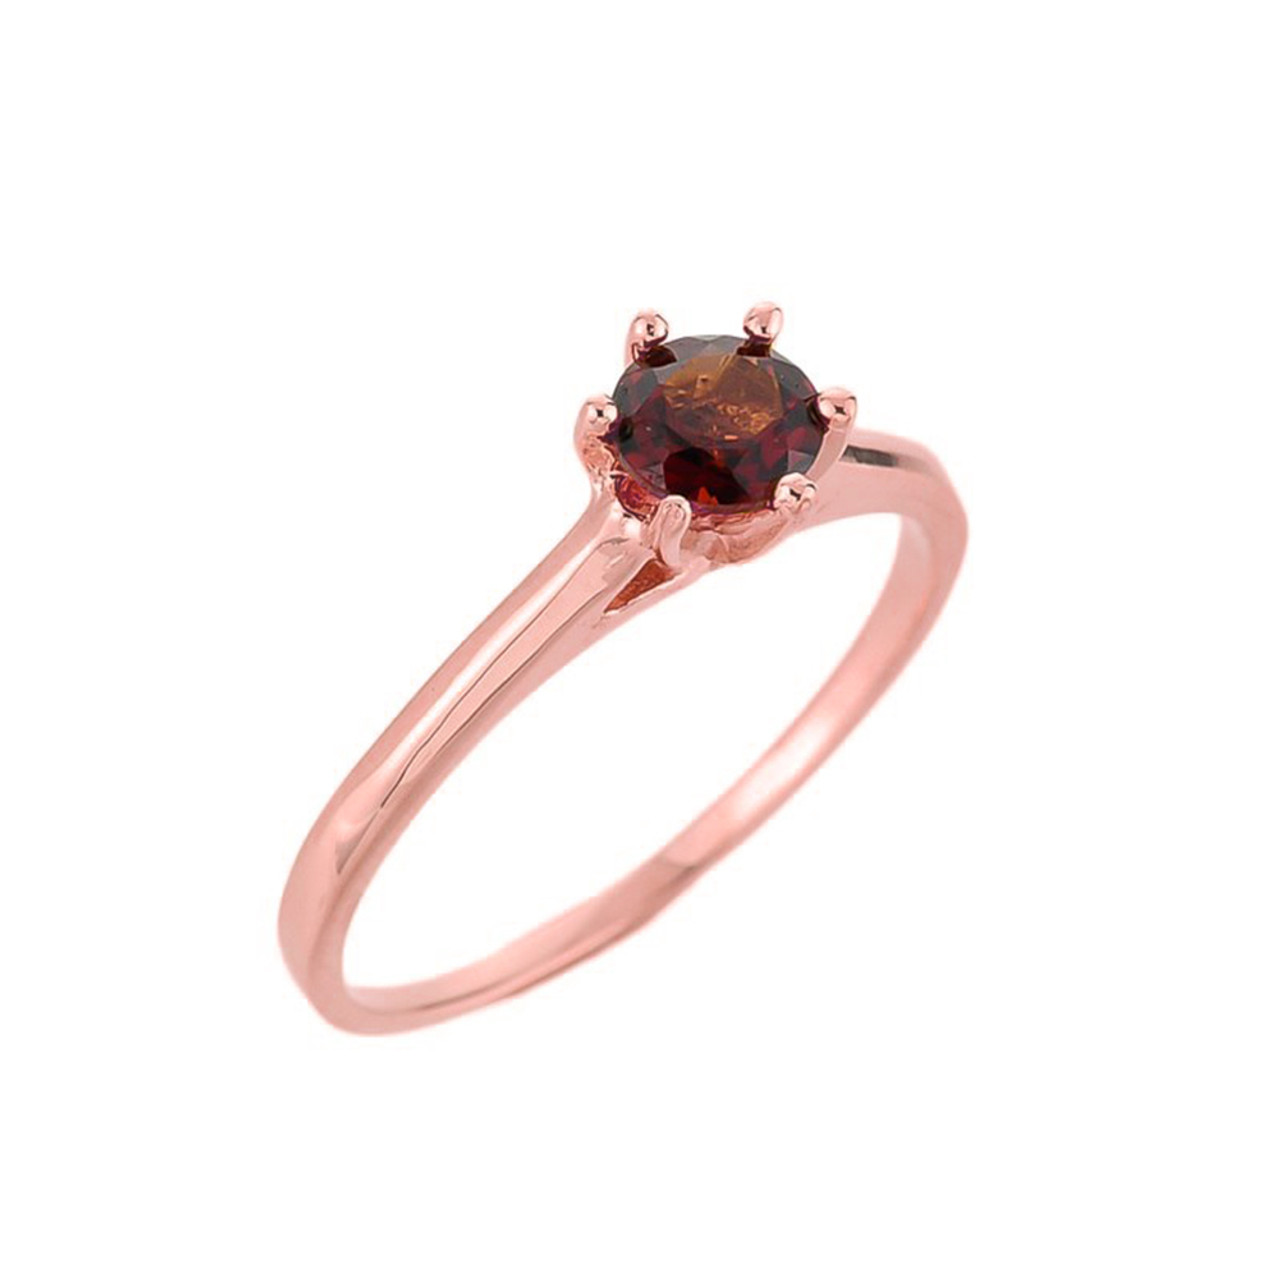 17de026fa0a32 10k Rose Gold Ladies Garnet Gemstone Solitaire Ring